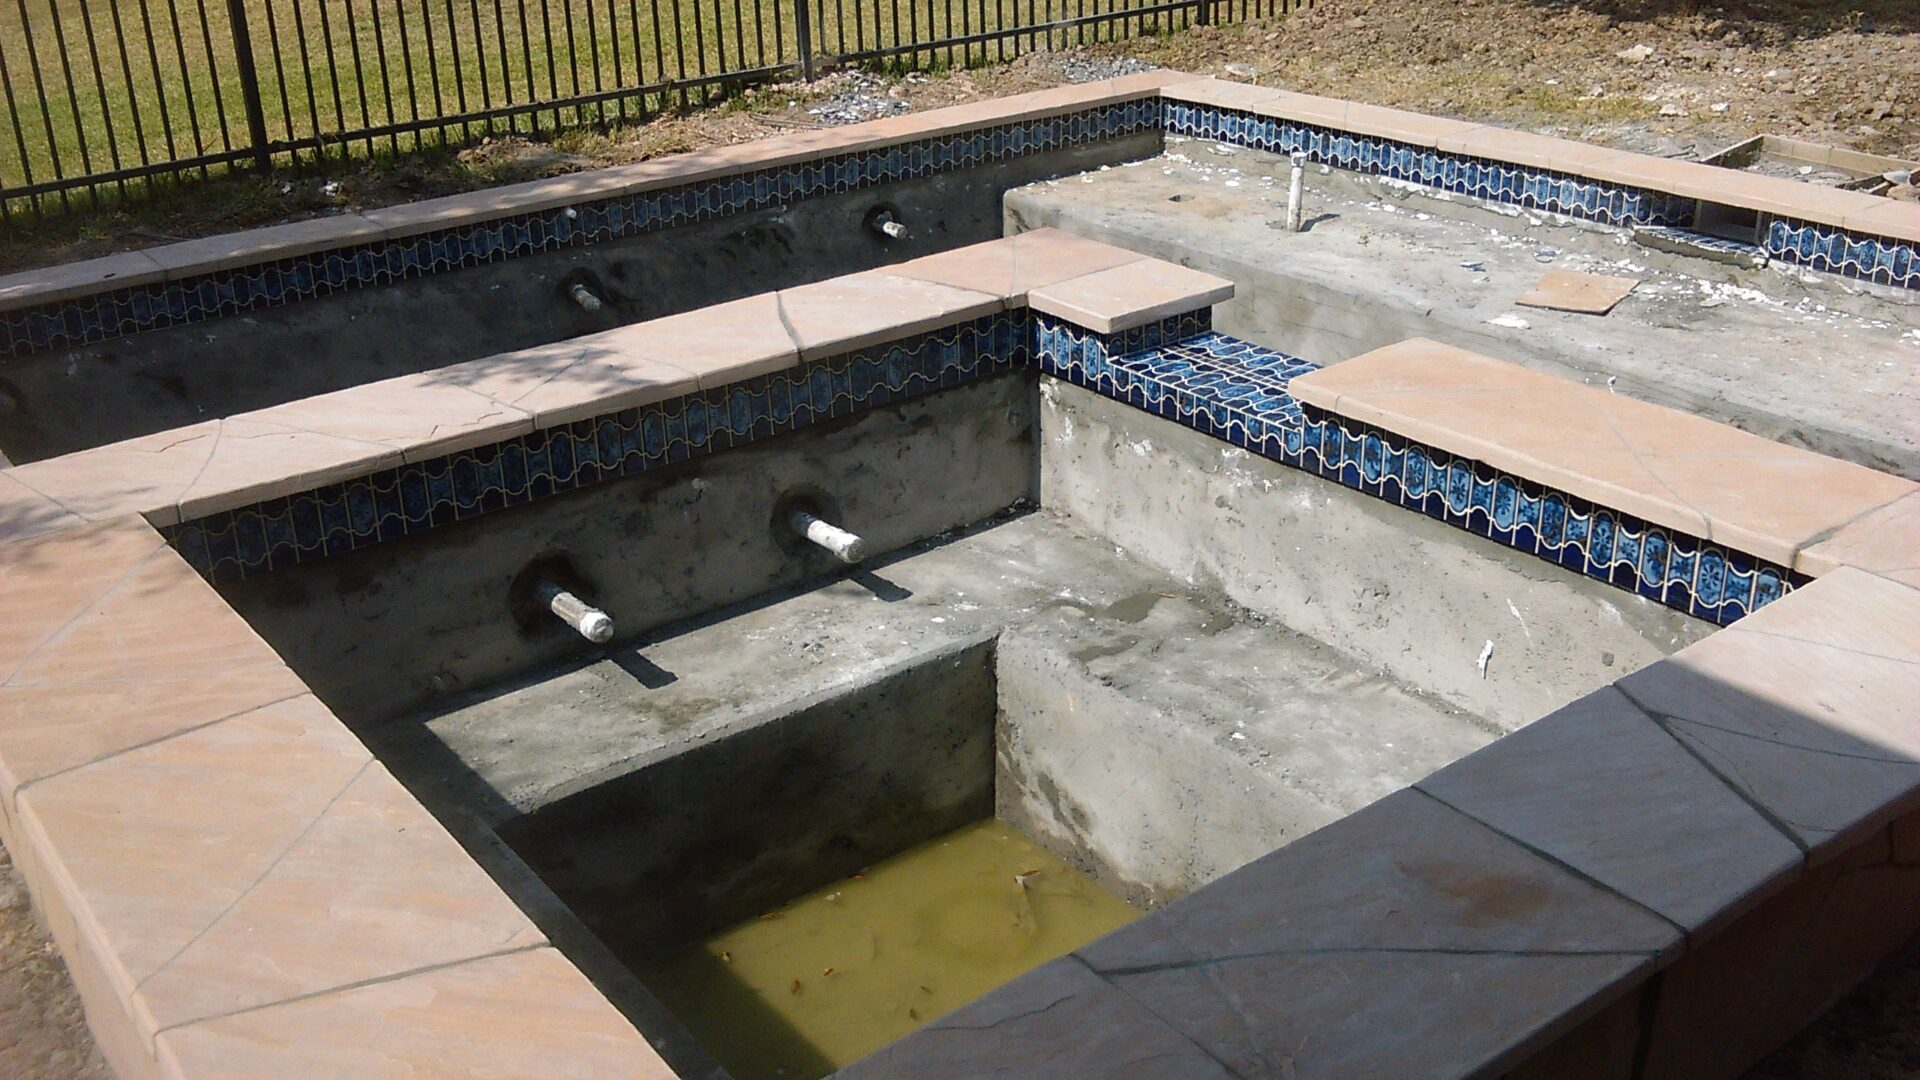 Pool Remodel - Copperfield - Before Image007